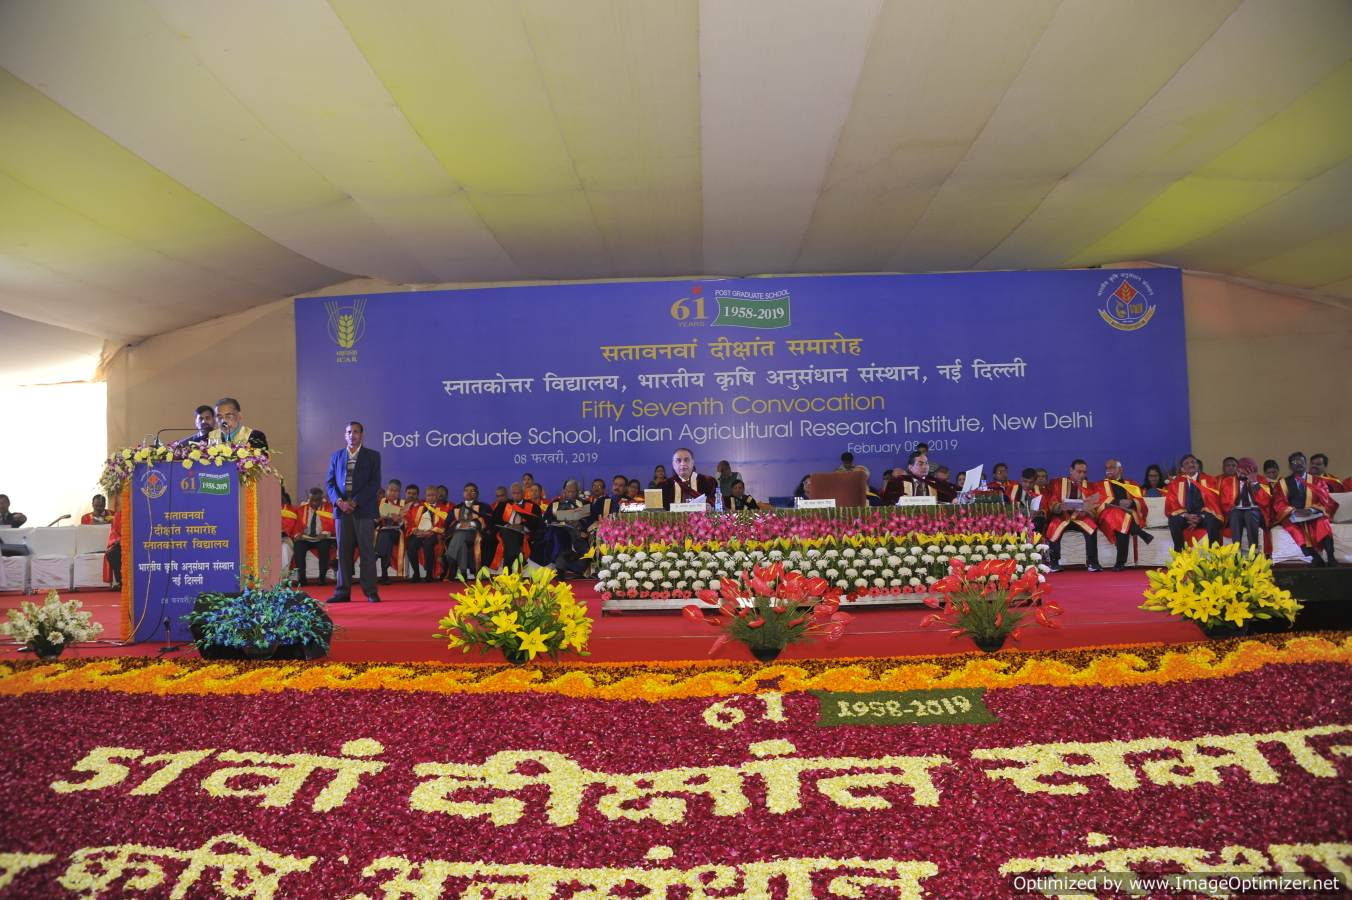 Shri Radha Mohan Singh, Hon'ble Union Minister of Agriculture and Farmer's Welfare addressing the gathering during 57th IARI Convocation